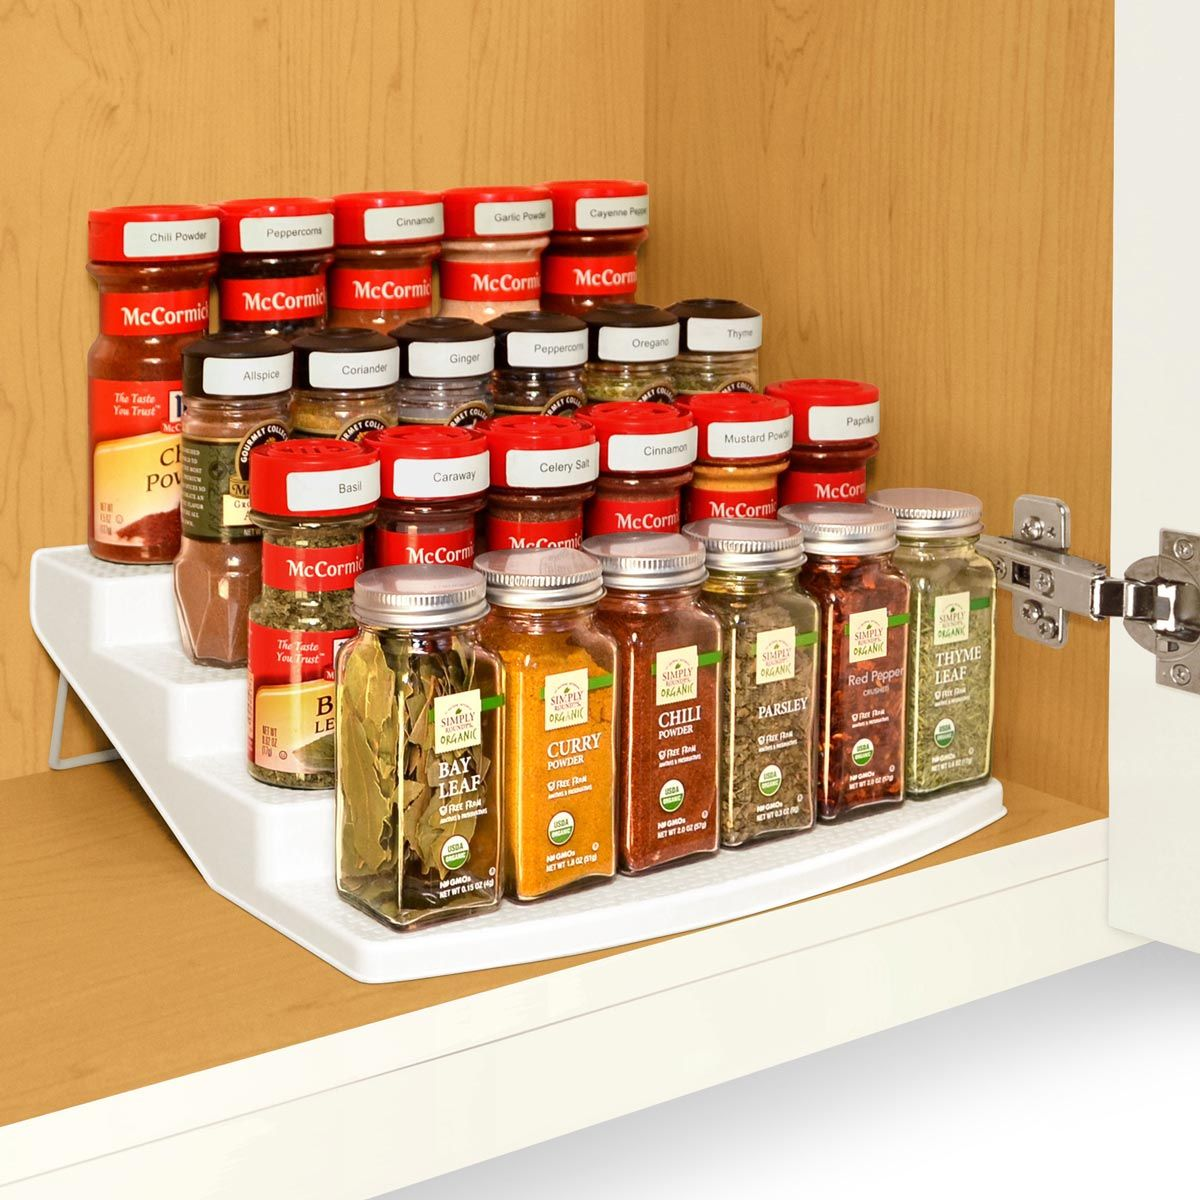 12 Ingenious Spice Storage Ideas is part of Spice Organization Rental - Chances are, you have a spice cabinet that is unorganized, making it difficult to find what you need when you need it  Here are 12 ingenious spice storage ideas you can try in your kitchen